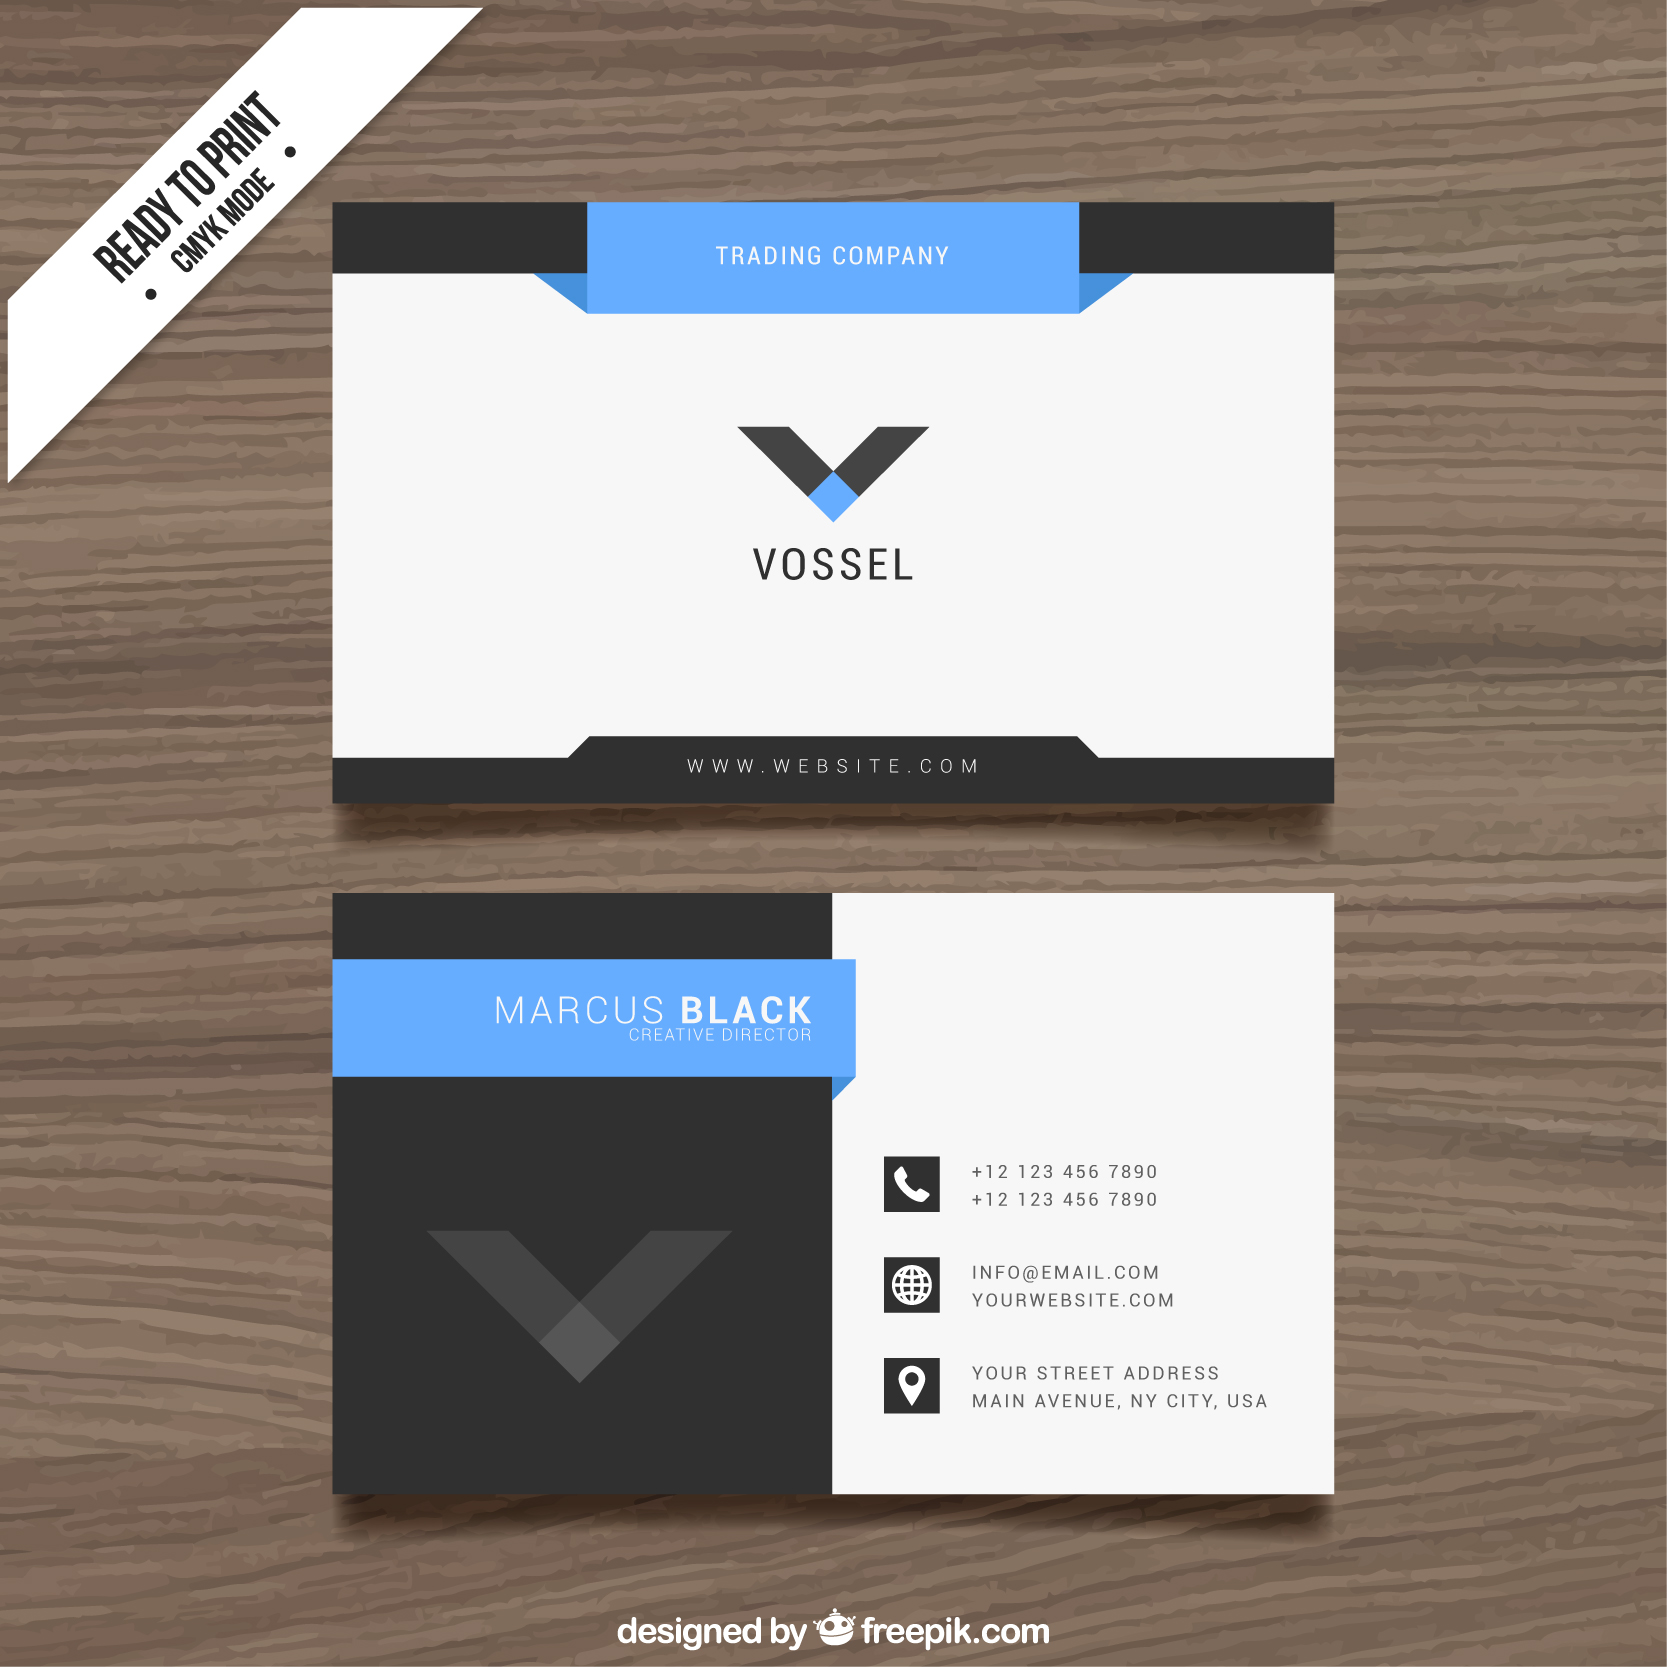 make stylish and professional two side BUSINESS card